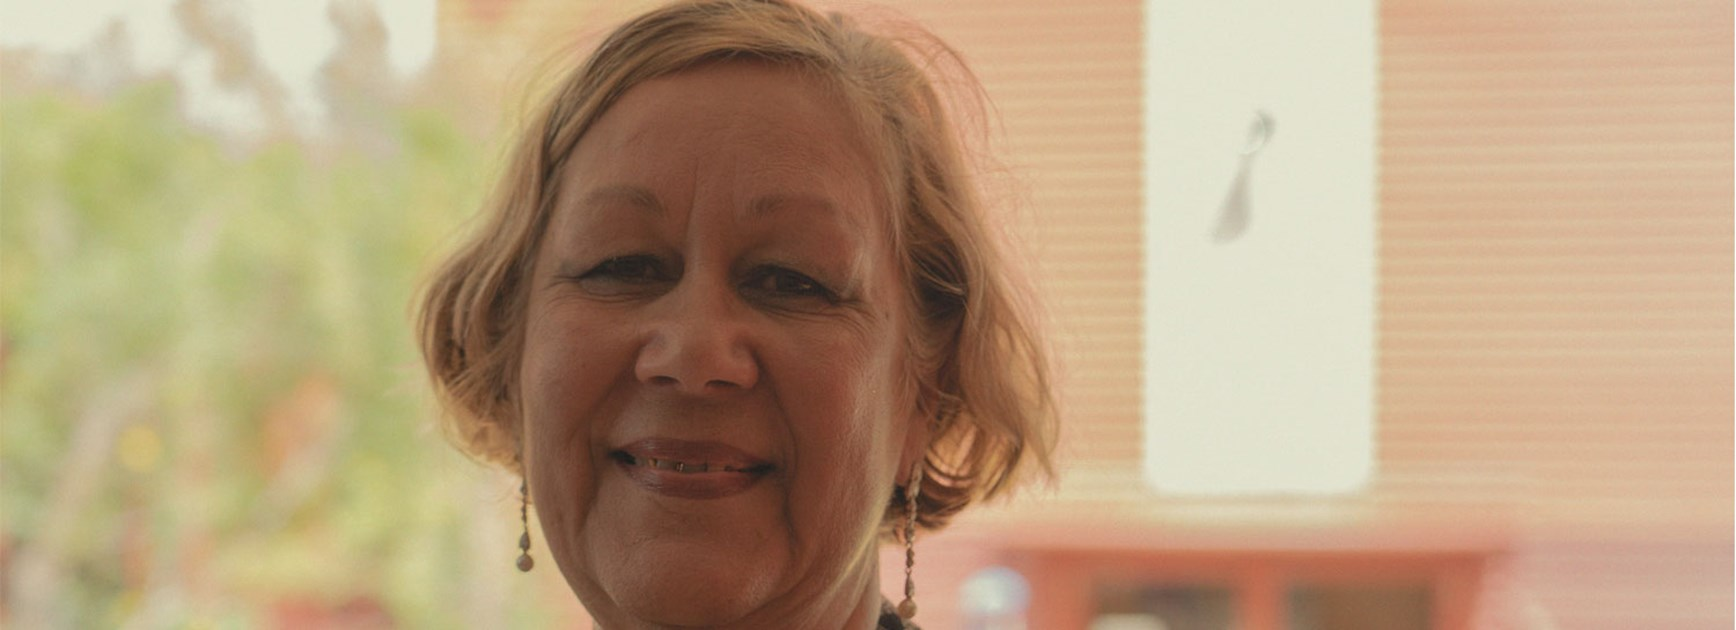 My Souths Story - Aunty Norma